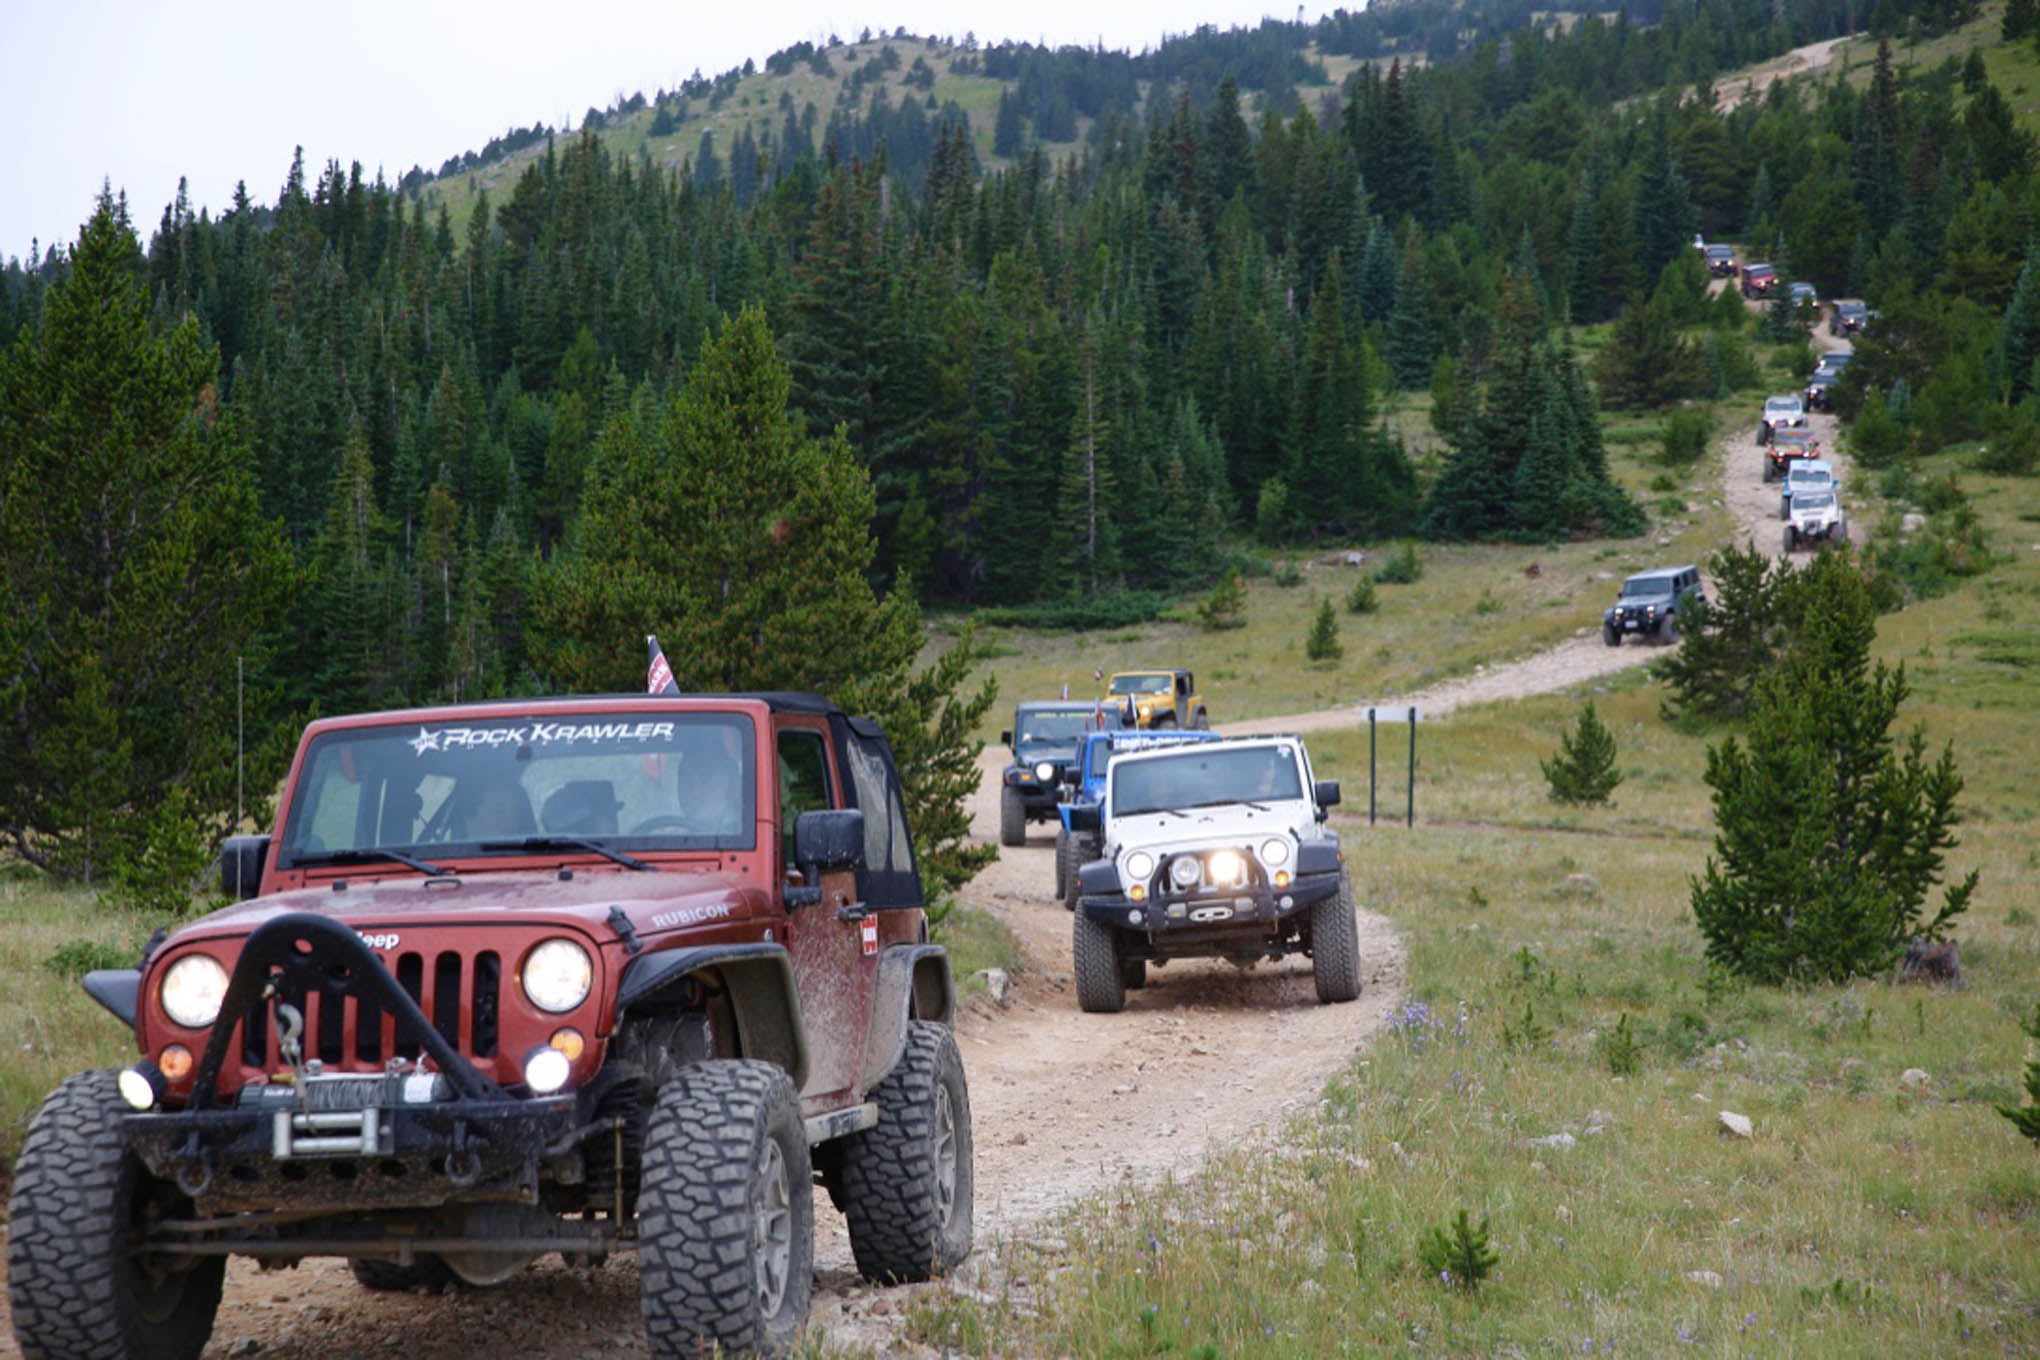 The Warn Anniversary Ride had a lineup of 20-plus rigs